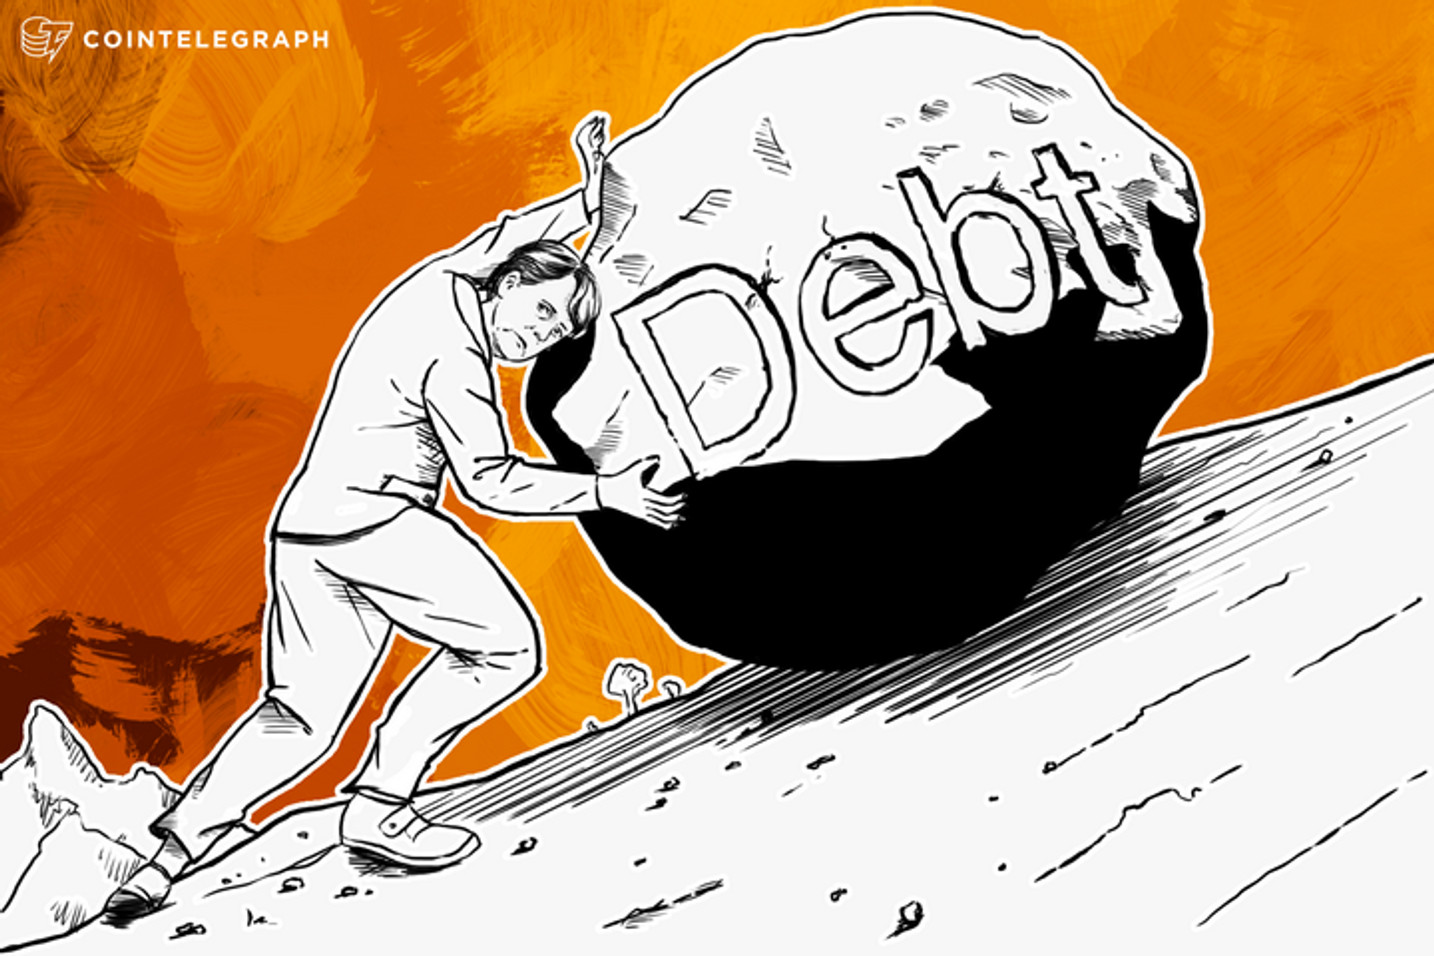 The Greek Dilemma: Hyper Inflation, Austerity, or Bitcoin?